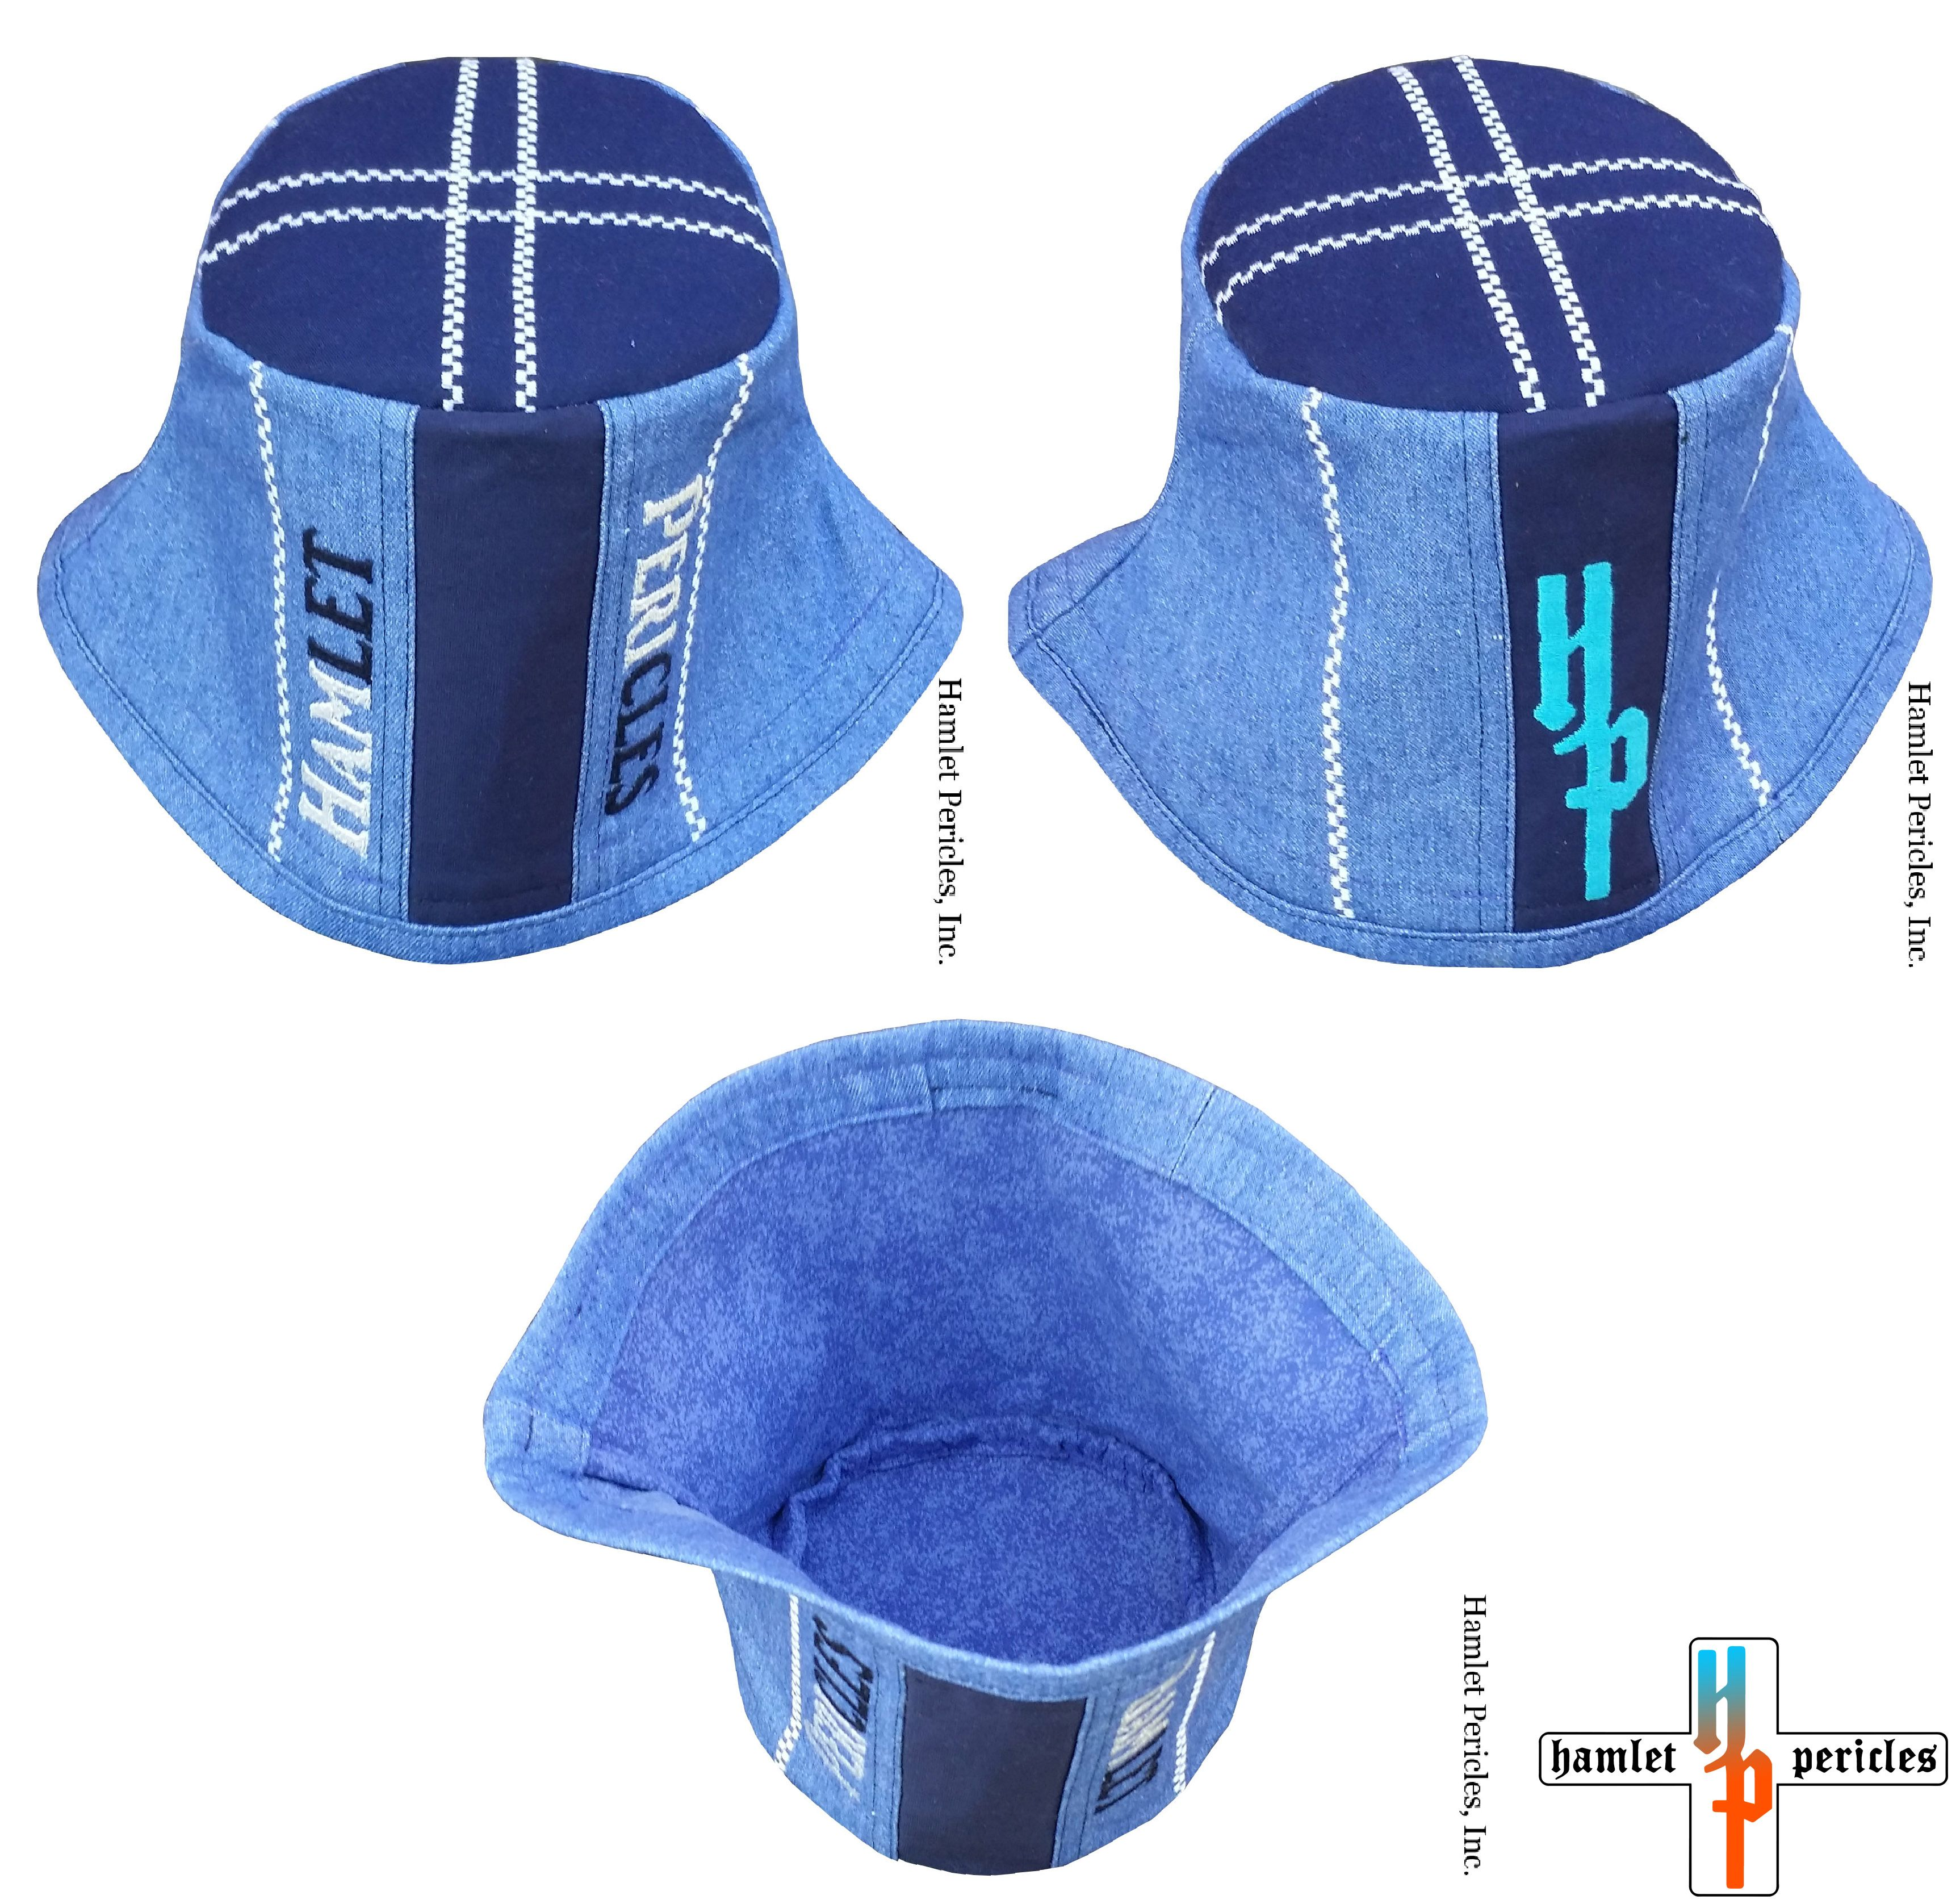 bf22ece39cc Royal Blue Denim + Navy Blue Poly-cotton Trigger Bucket Hat via Hamlet  Pericles